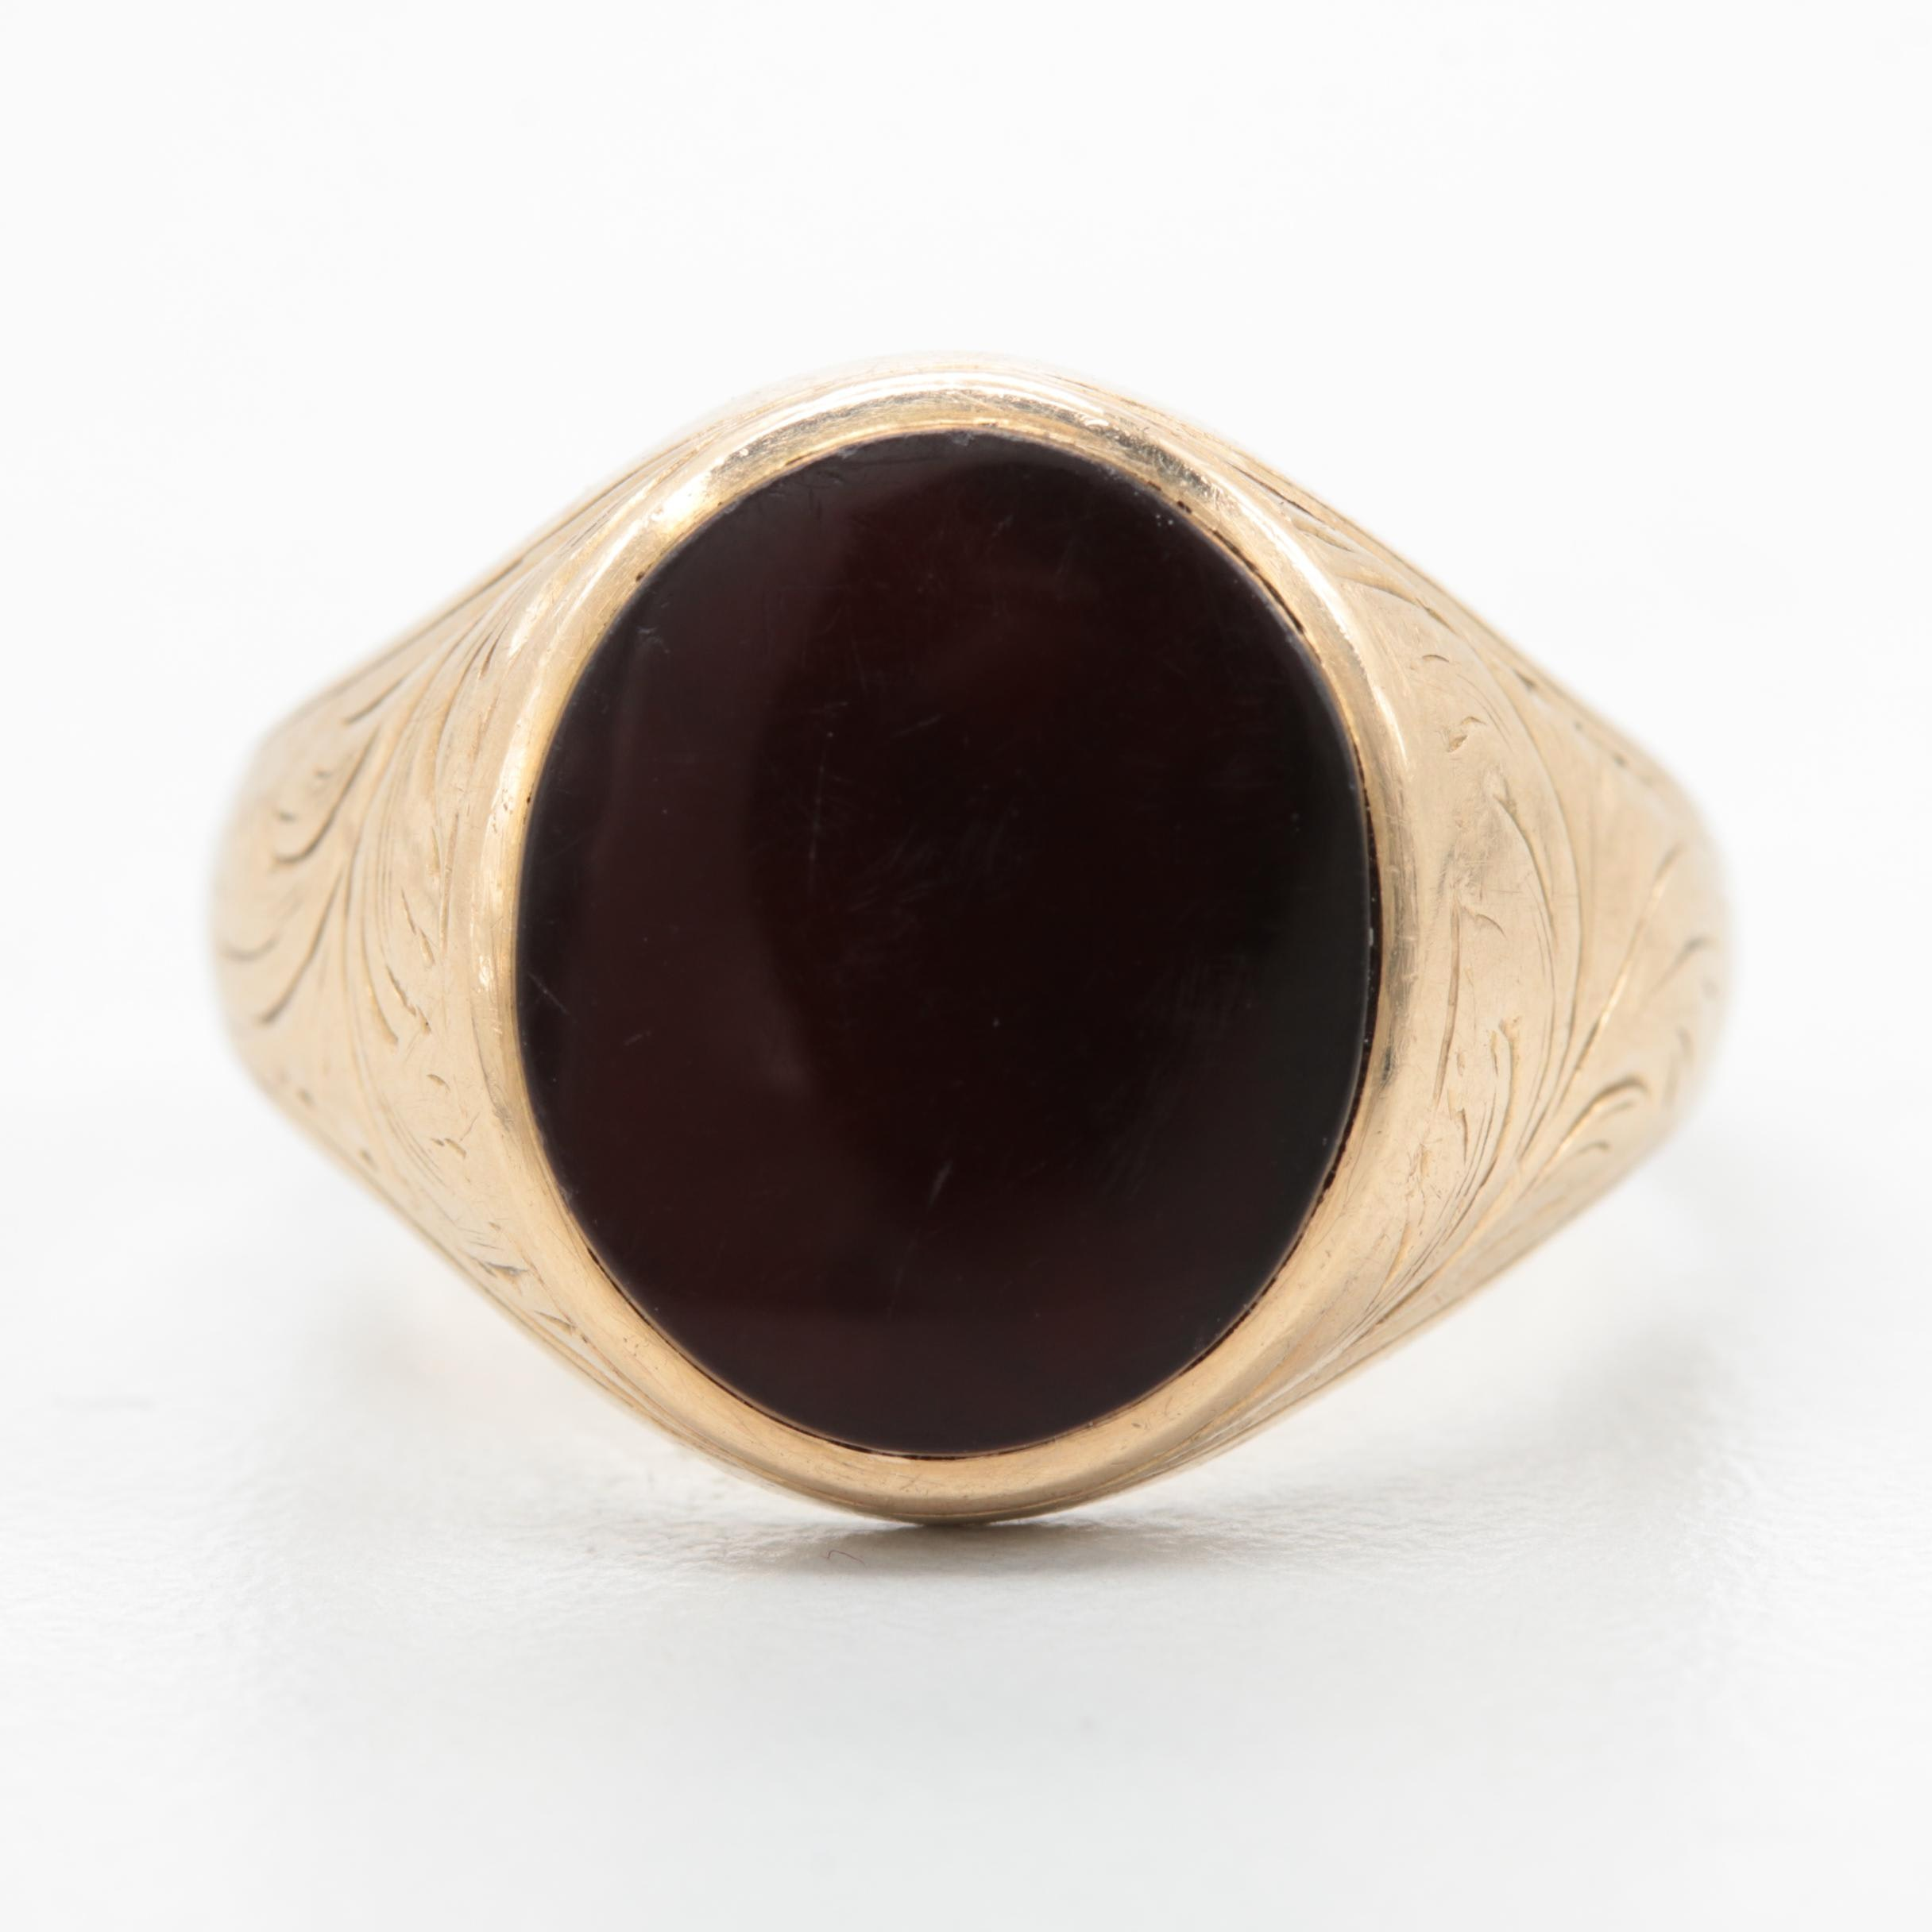 Late 1800s - Early 1900s 10K Yellow Gold Garnet Ring